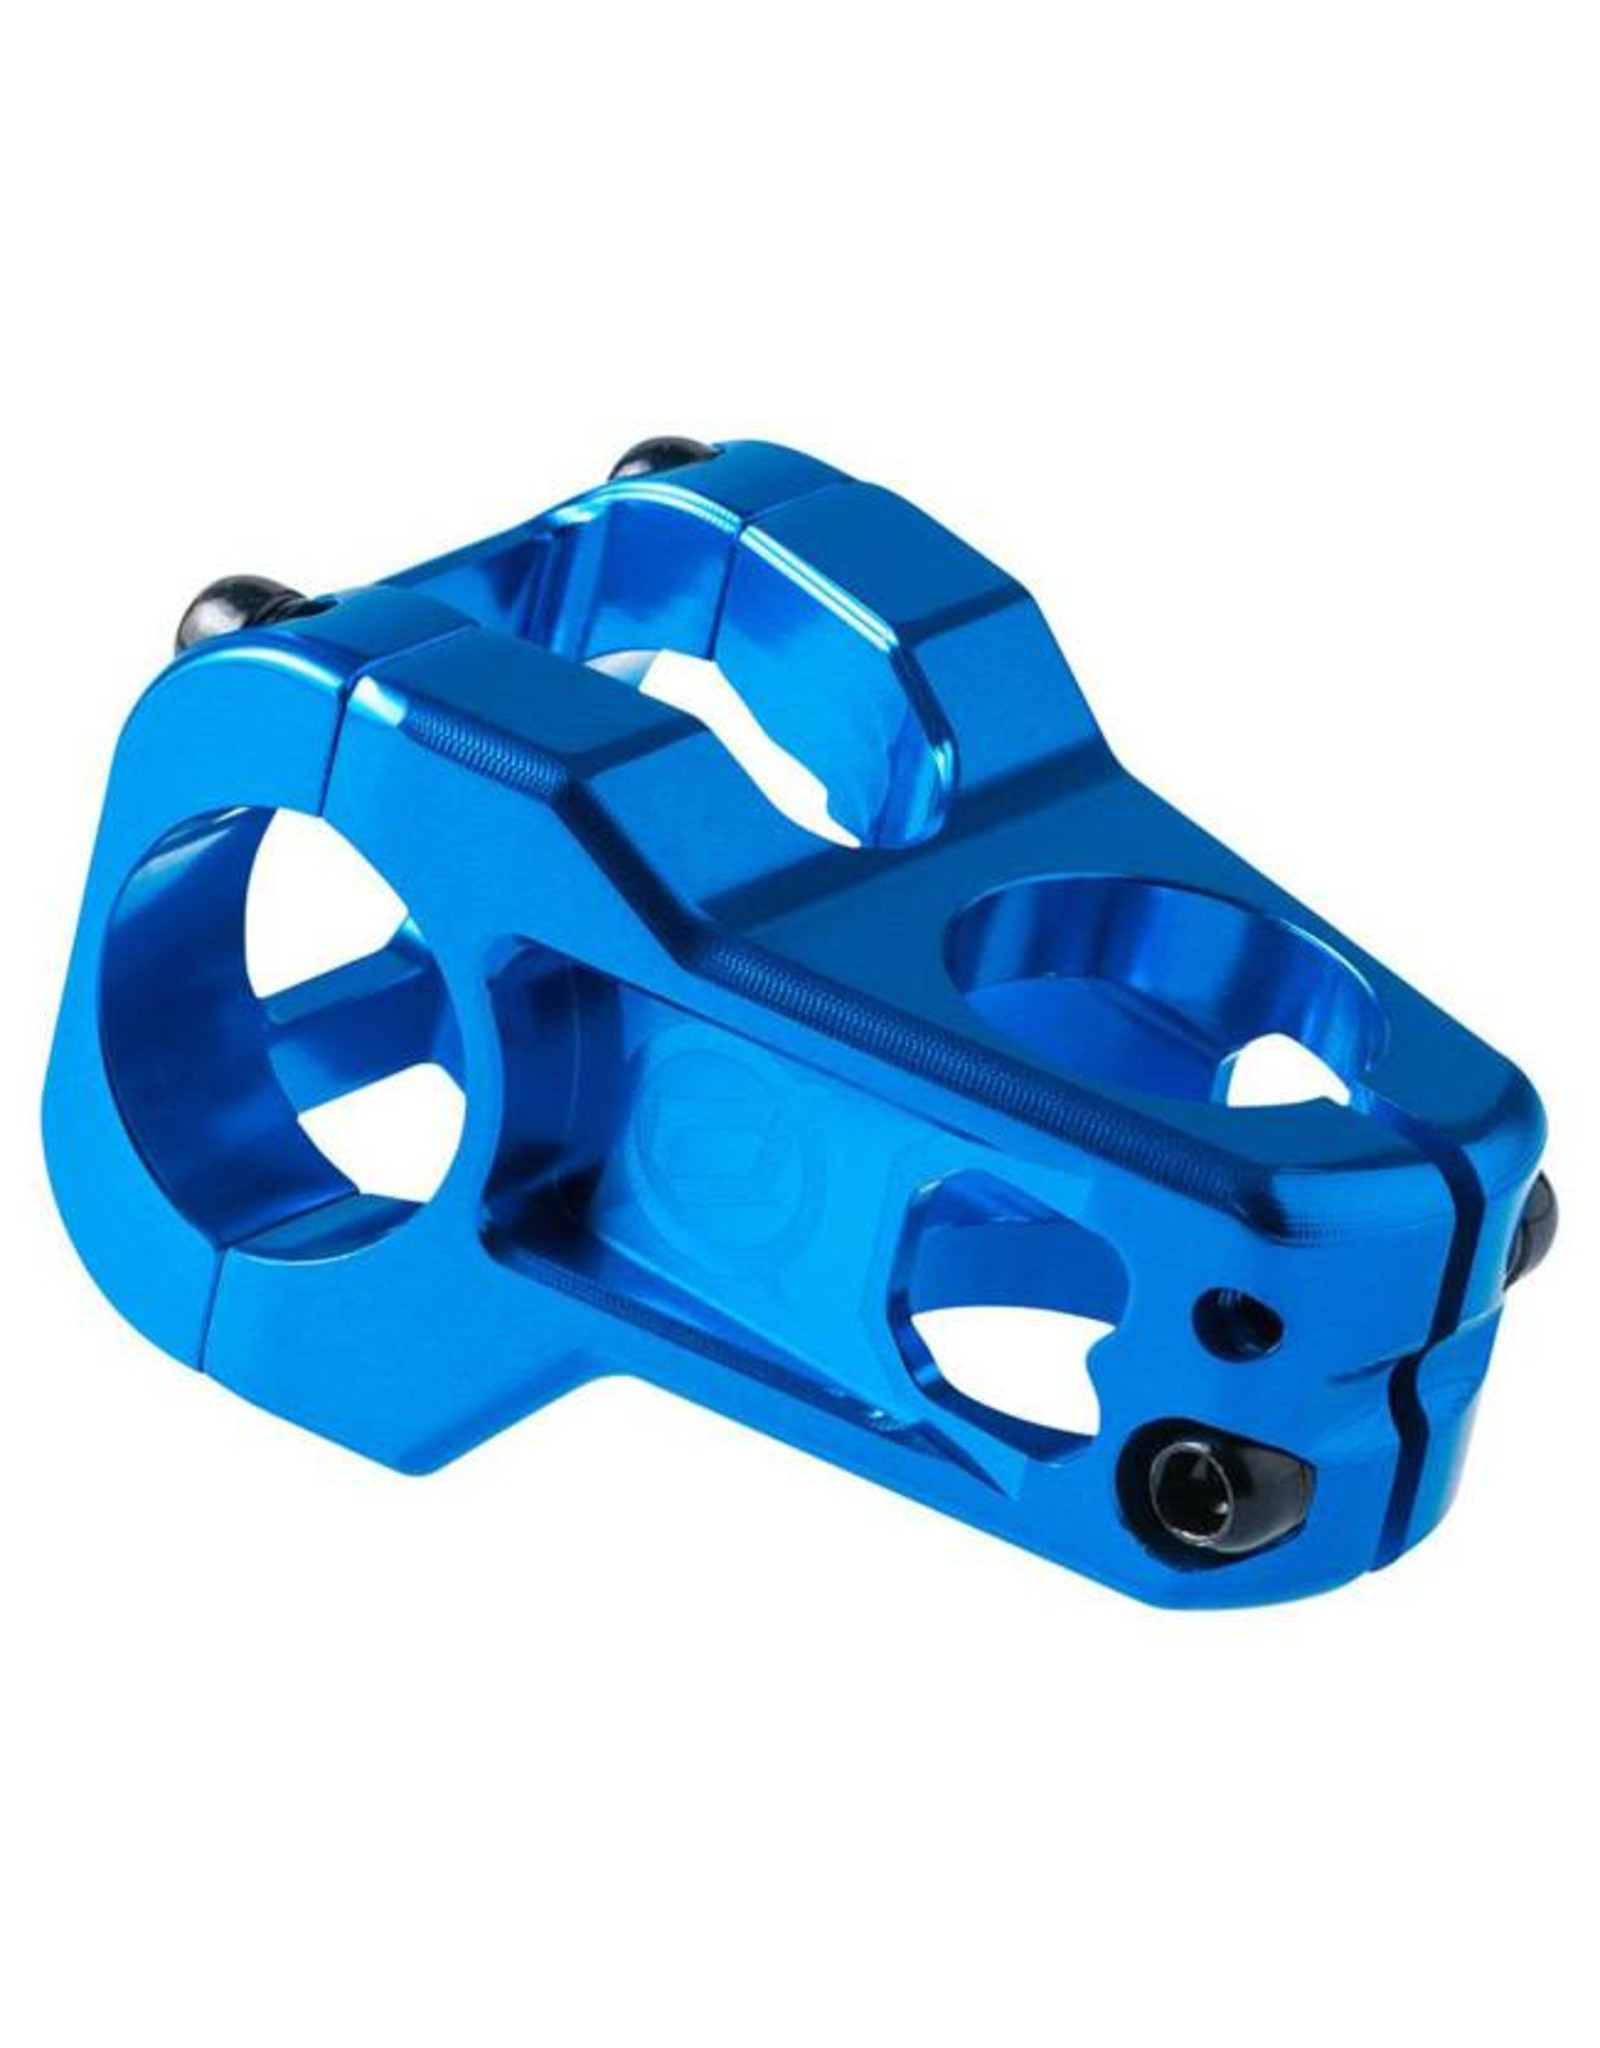 Deity Components Deity Cavity Stem: 35mm, 31.8 Clamp, Blue